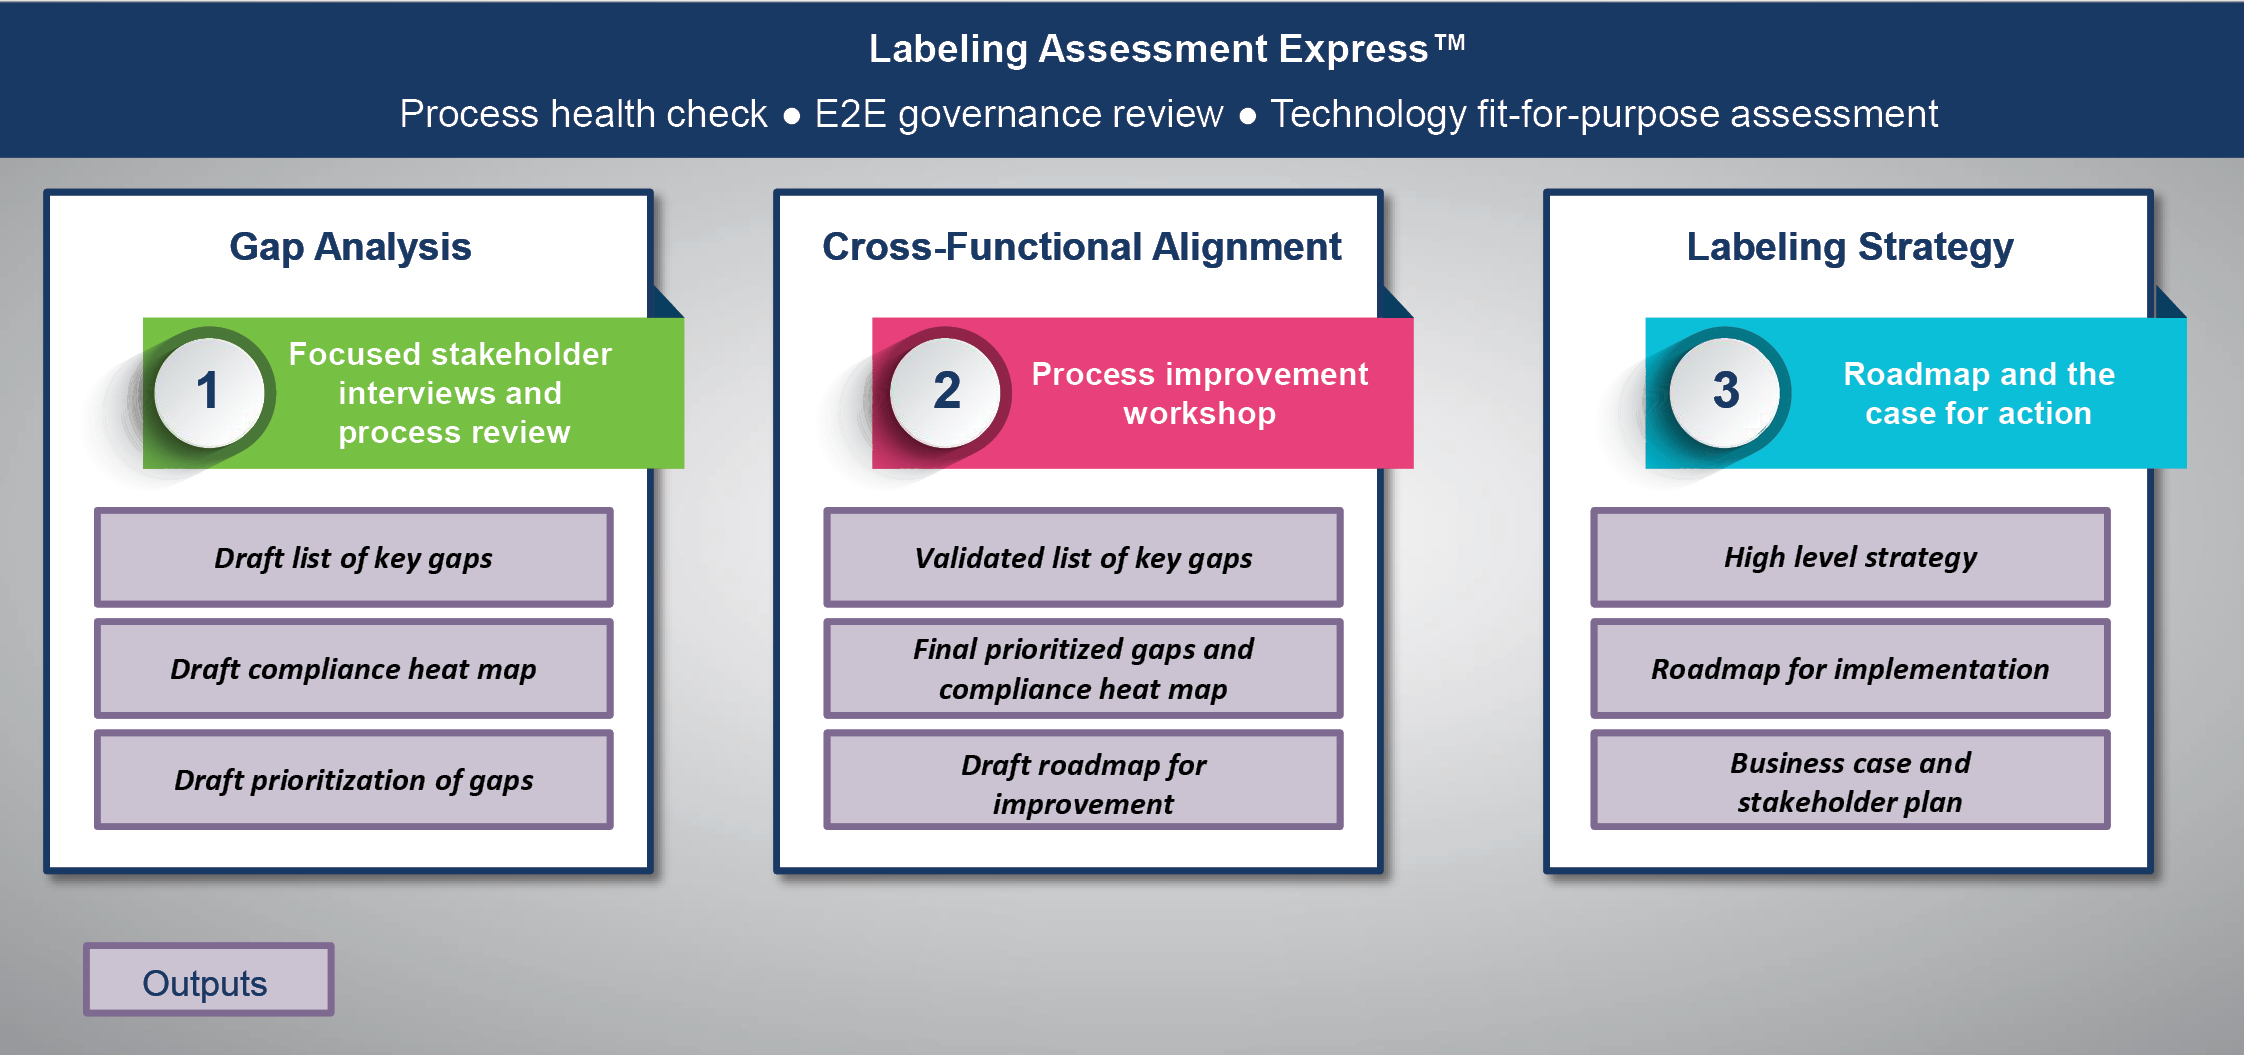 Labeling Assessment Express